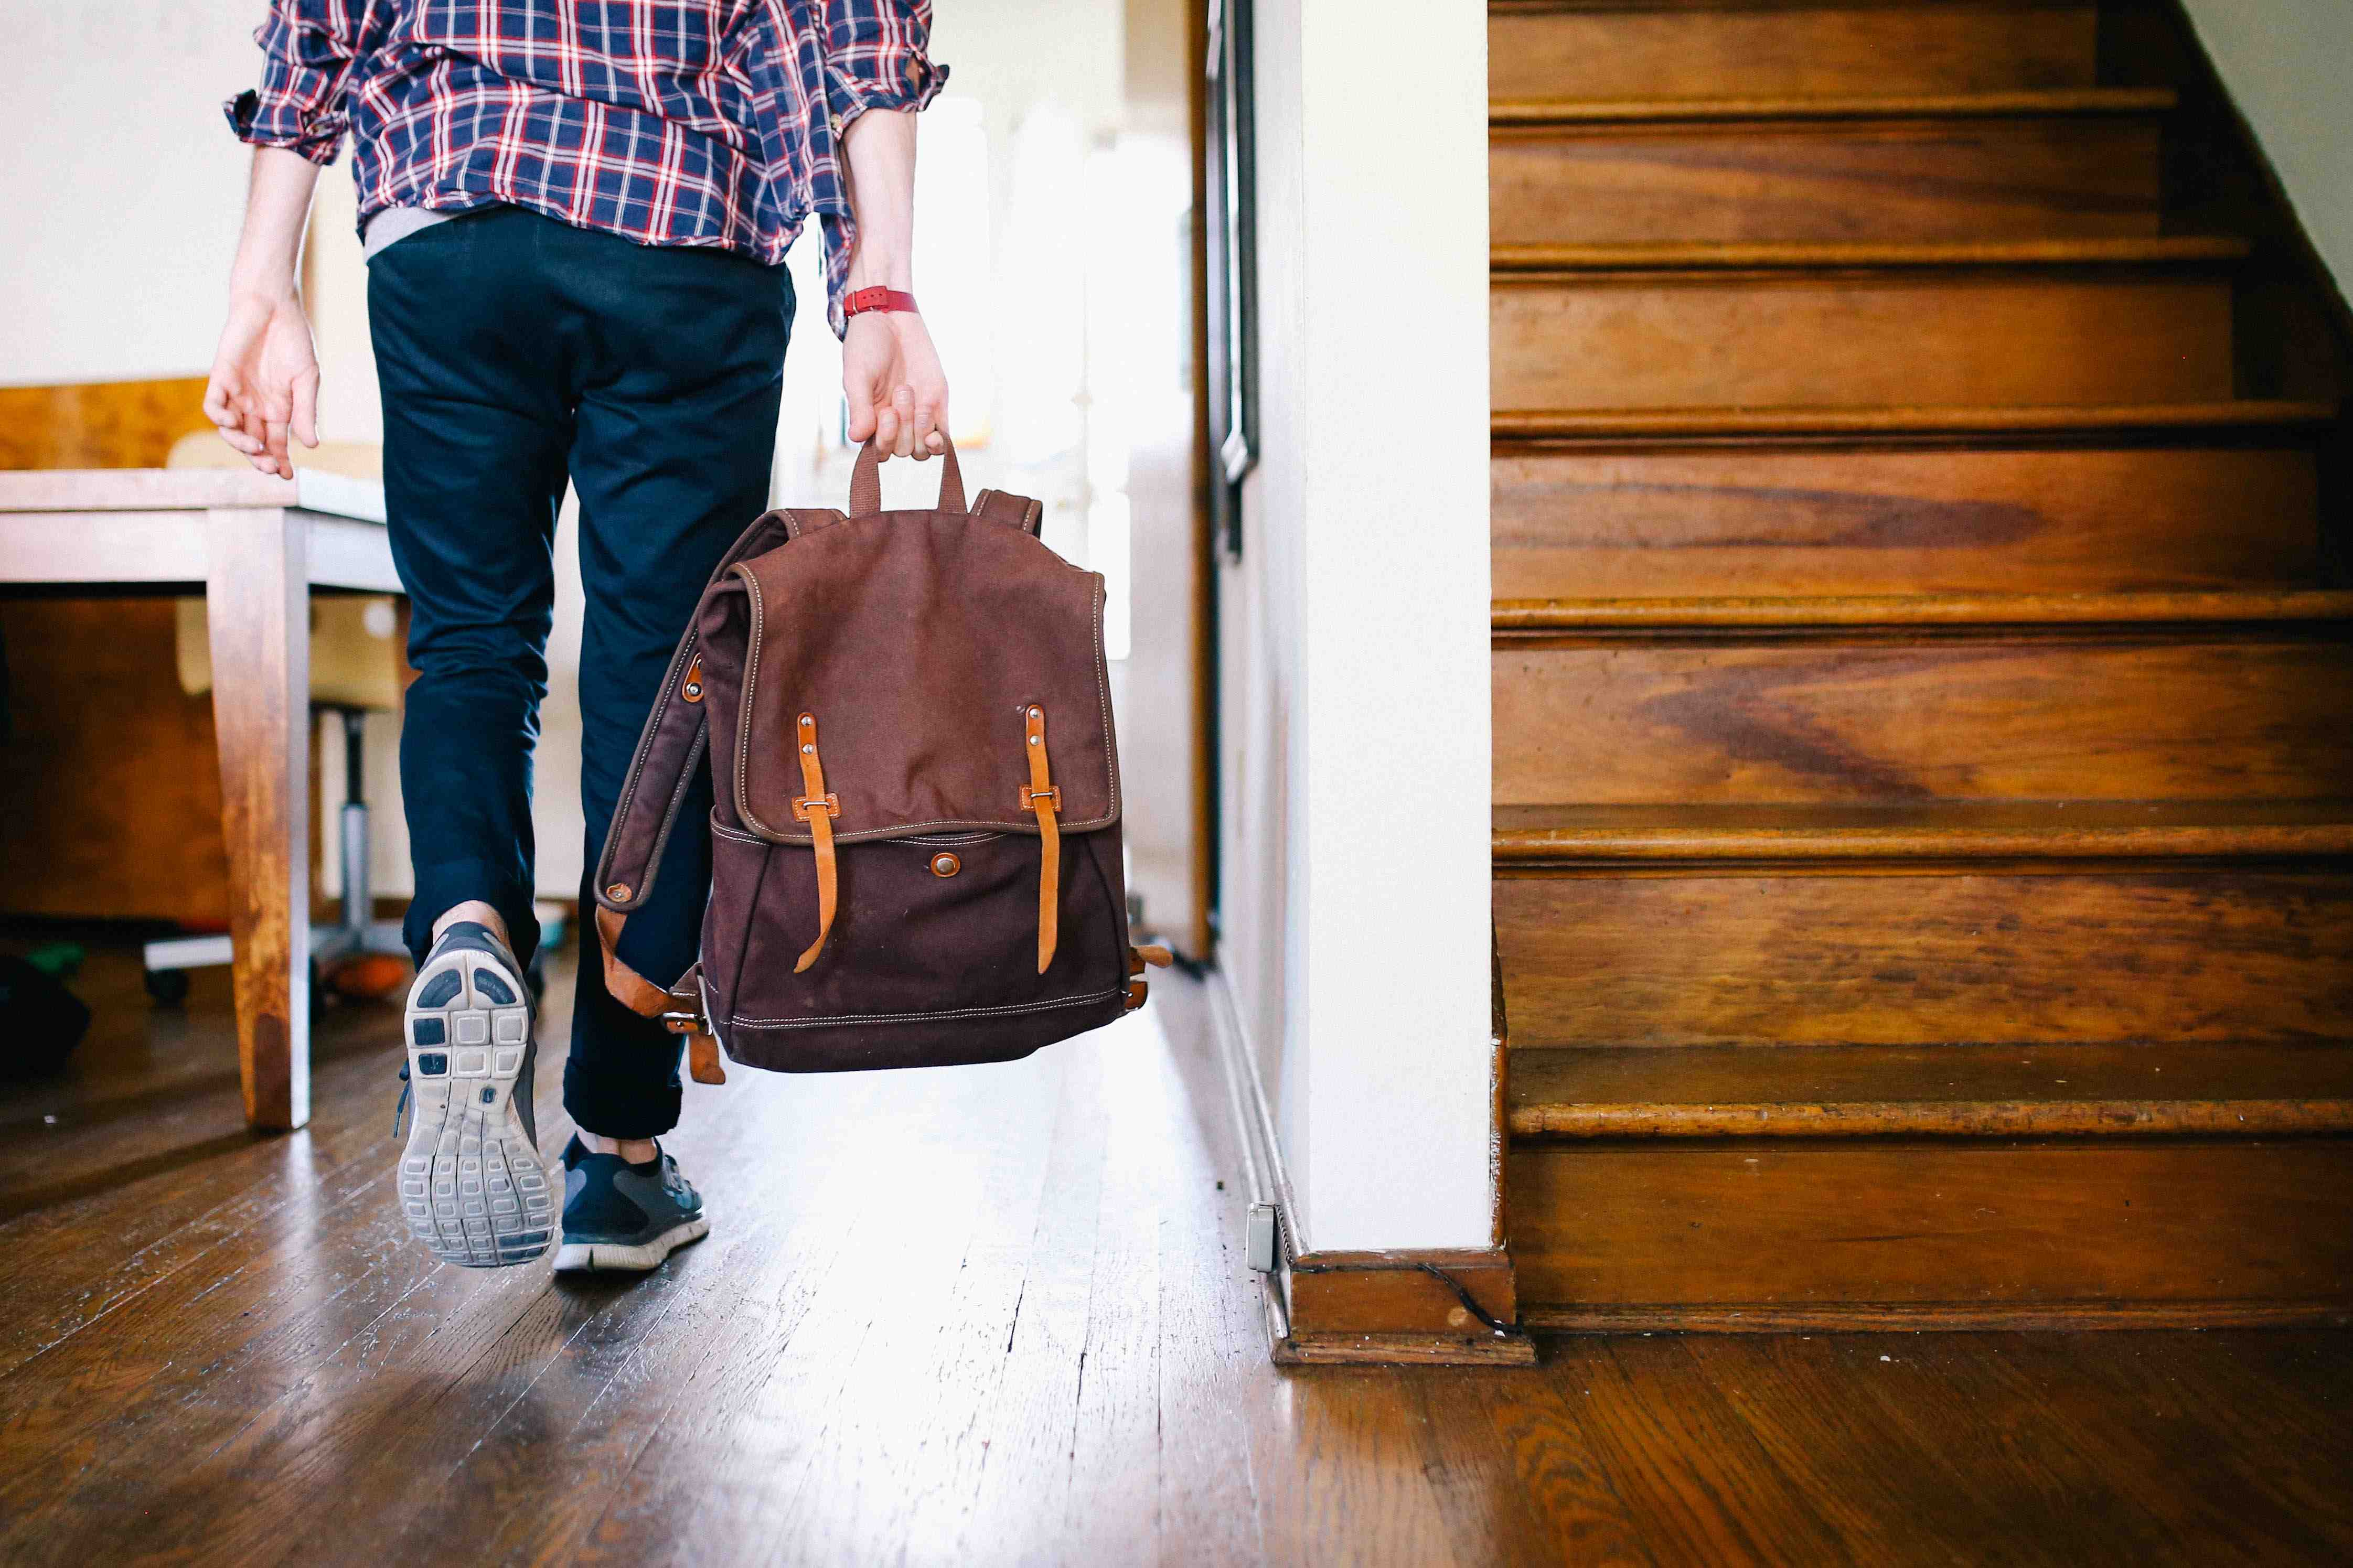 Career guide on Leaving Your Corporate Job to Found a Startup